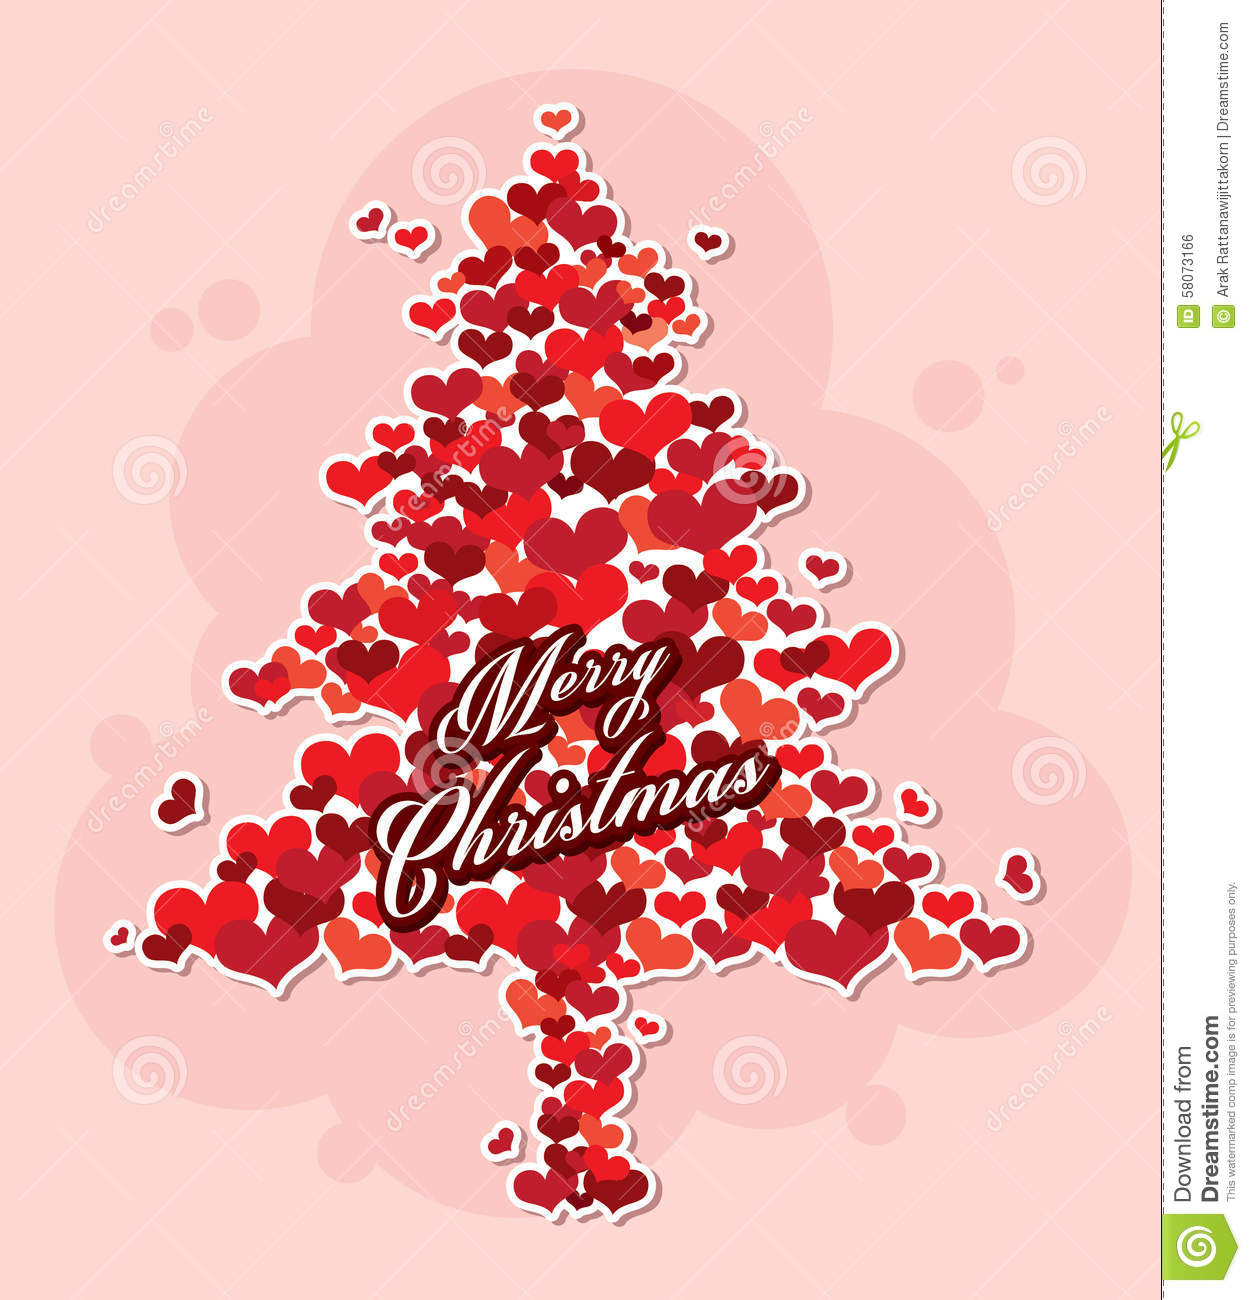 Merry Christmas Tree From Heart. Stock Vector - Illustration of ...